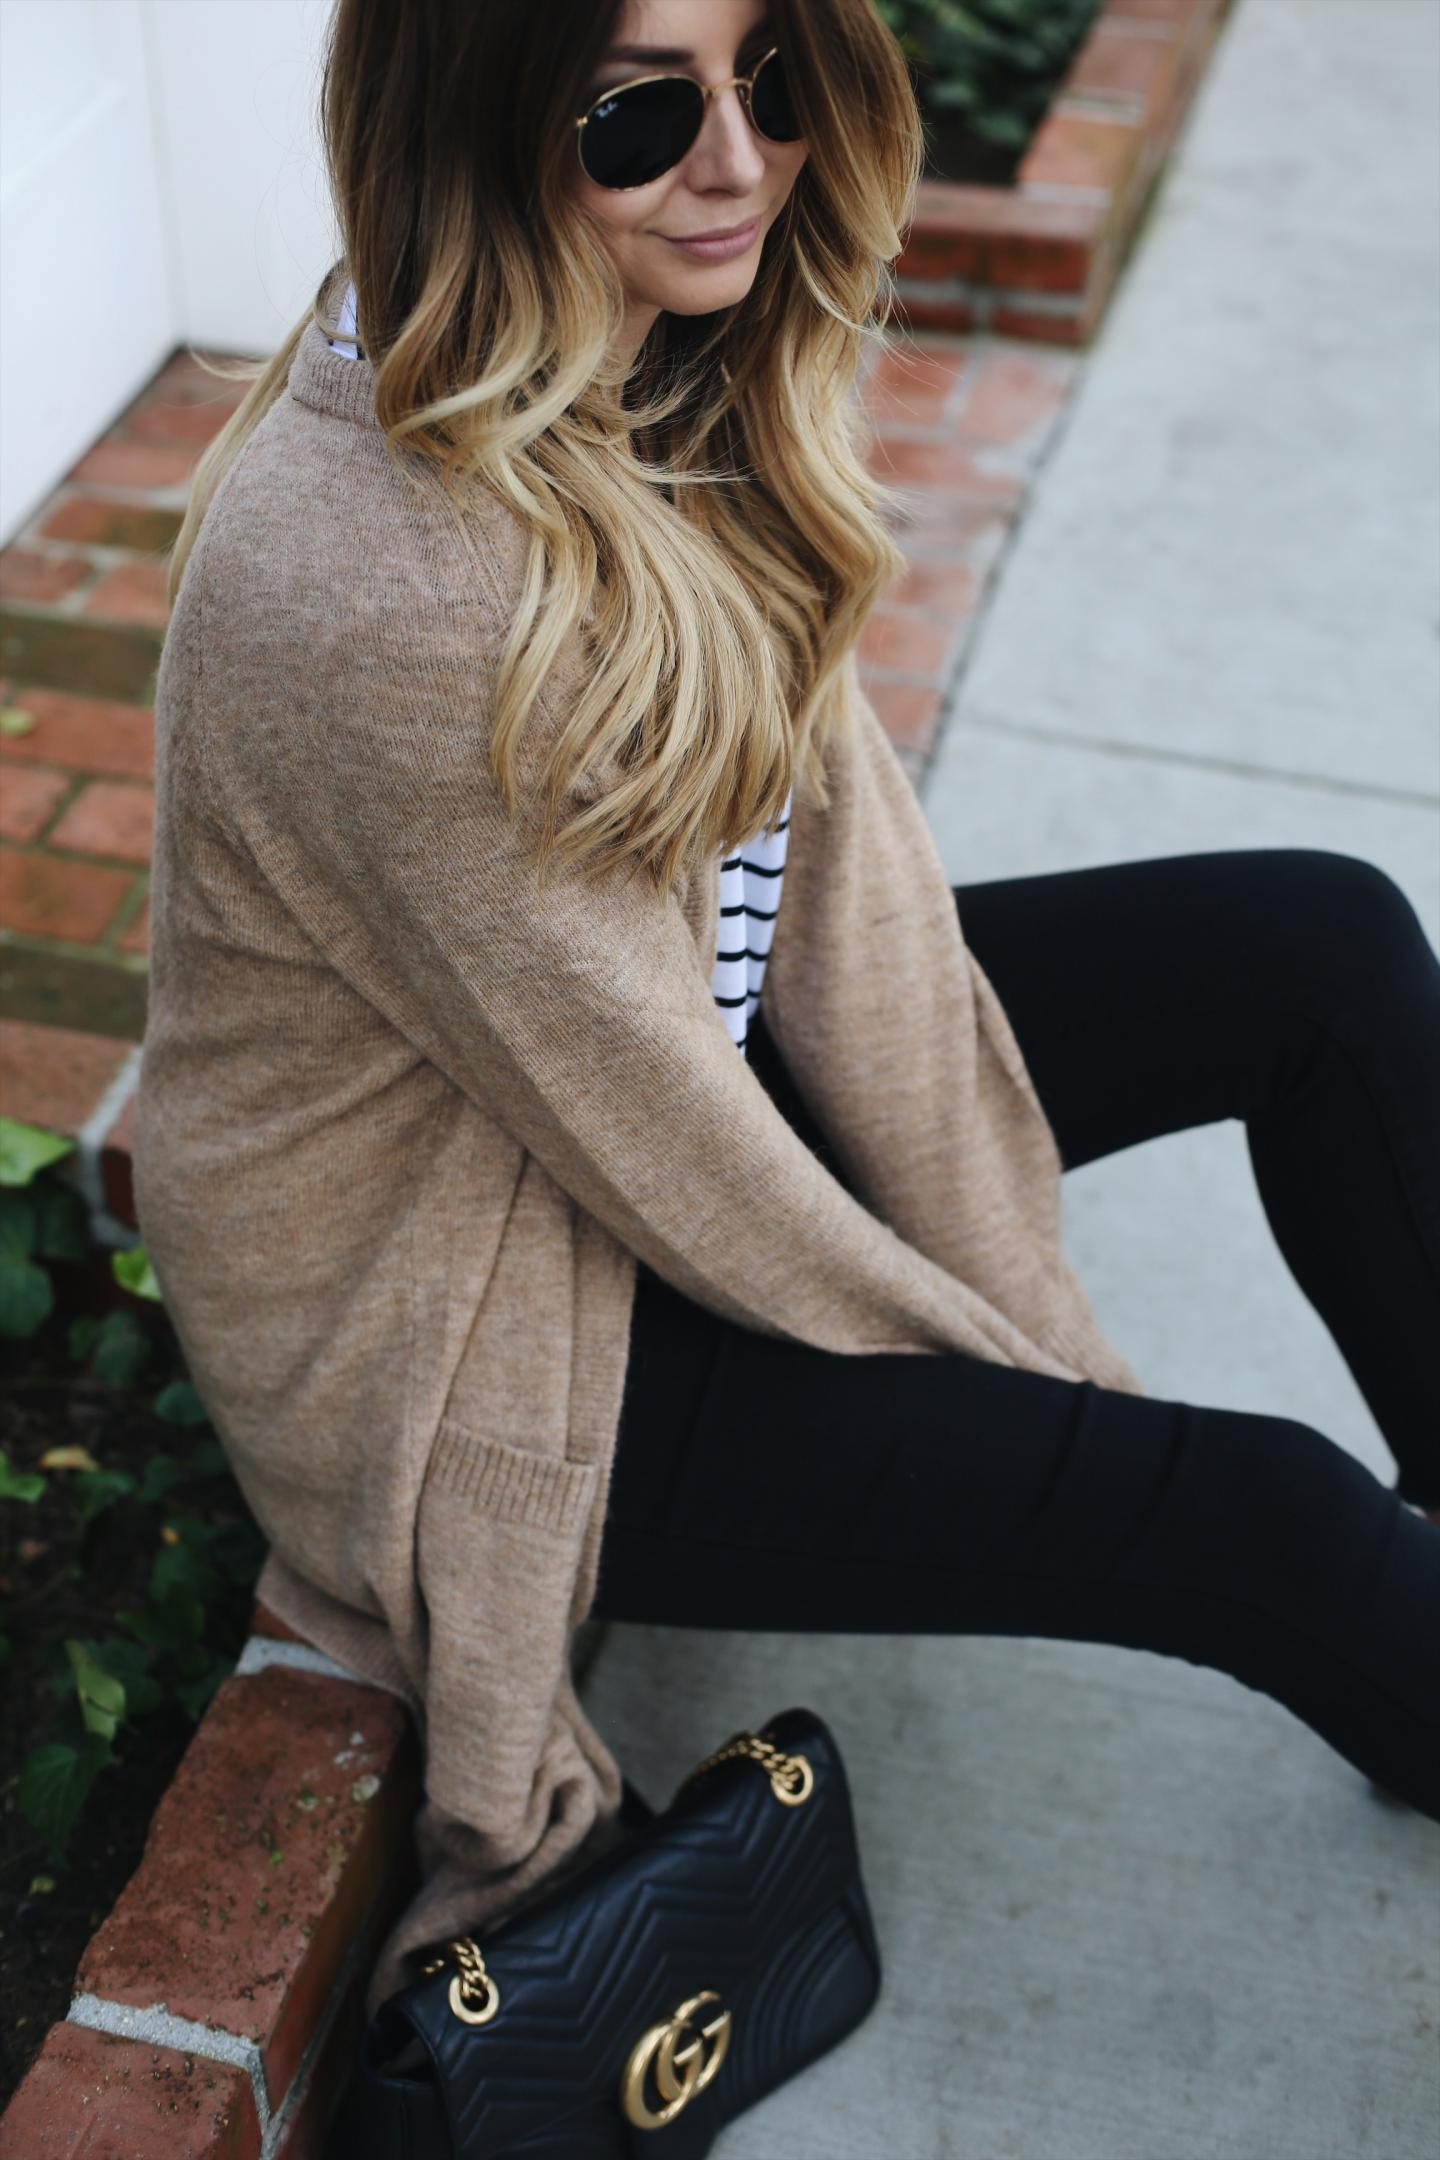 camel cardigan, stripe t-shirt, black skinny jeans, Gucci marmont bag, casual outfit